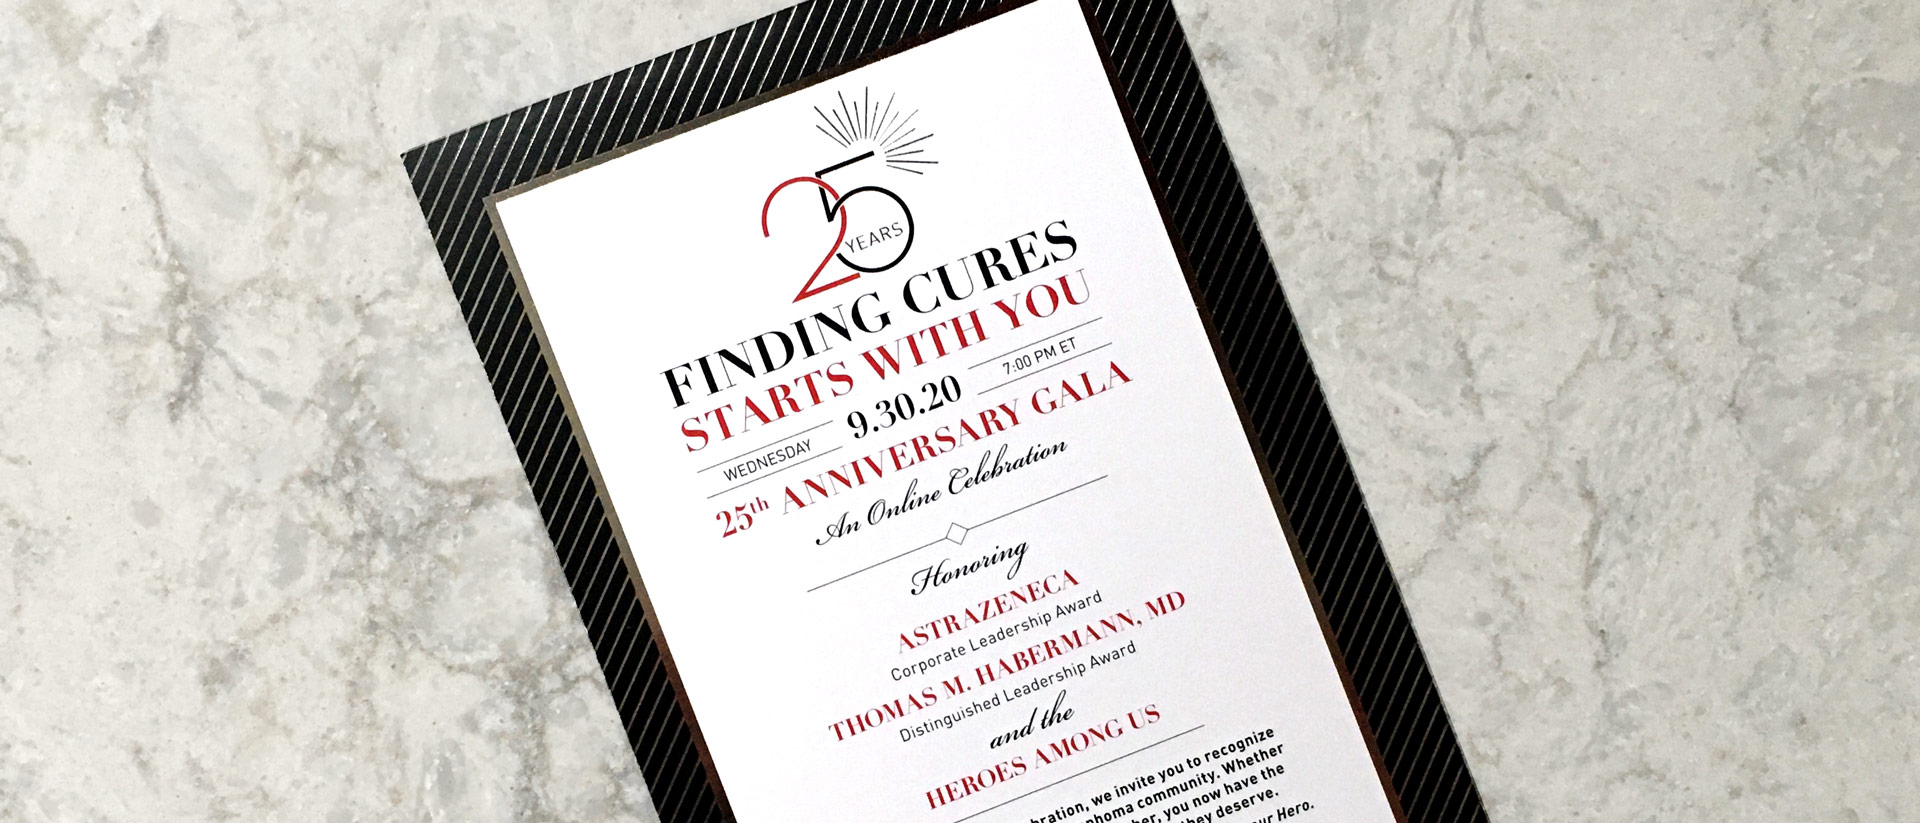 Graphic Design for Lymphoma Research Anniversary